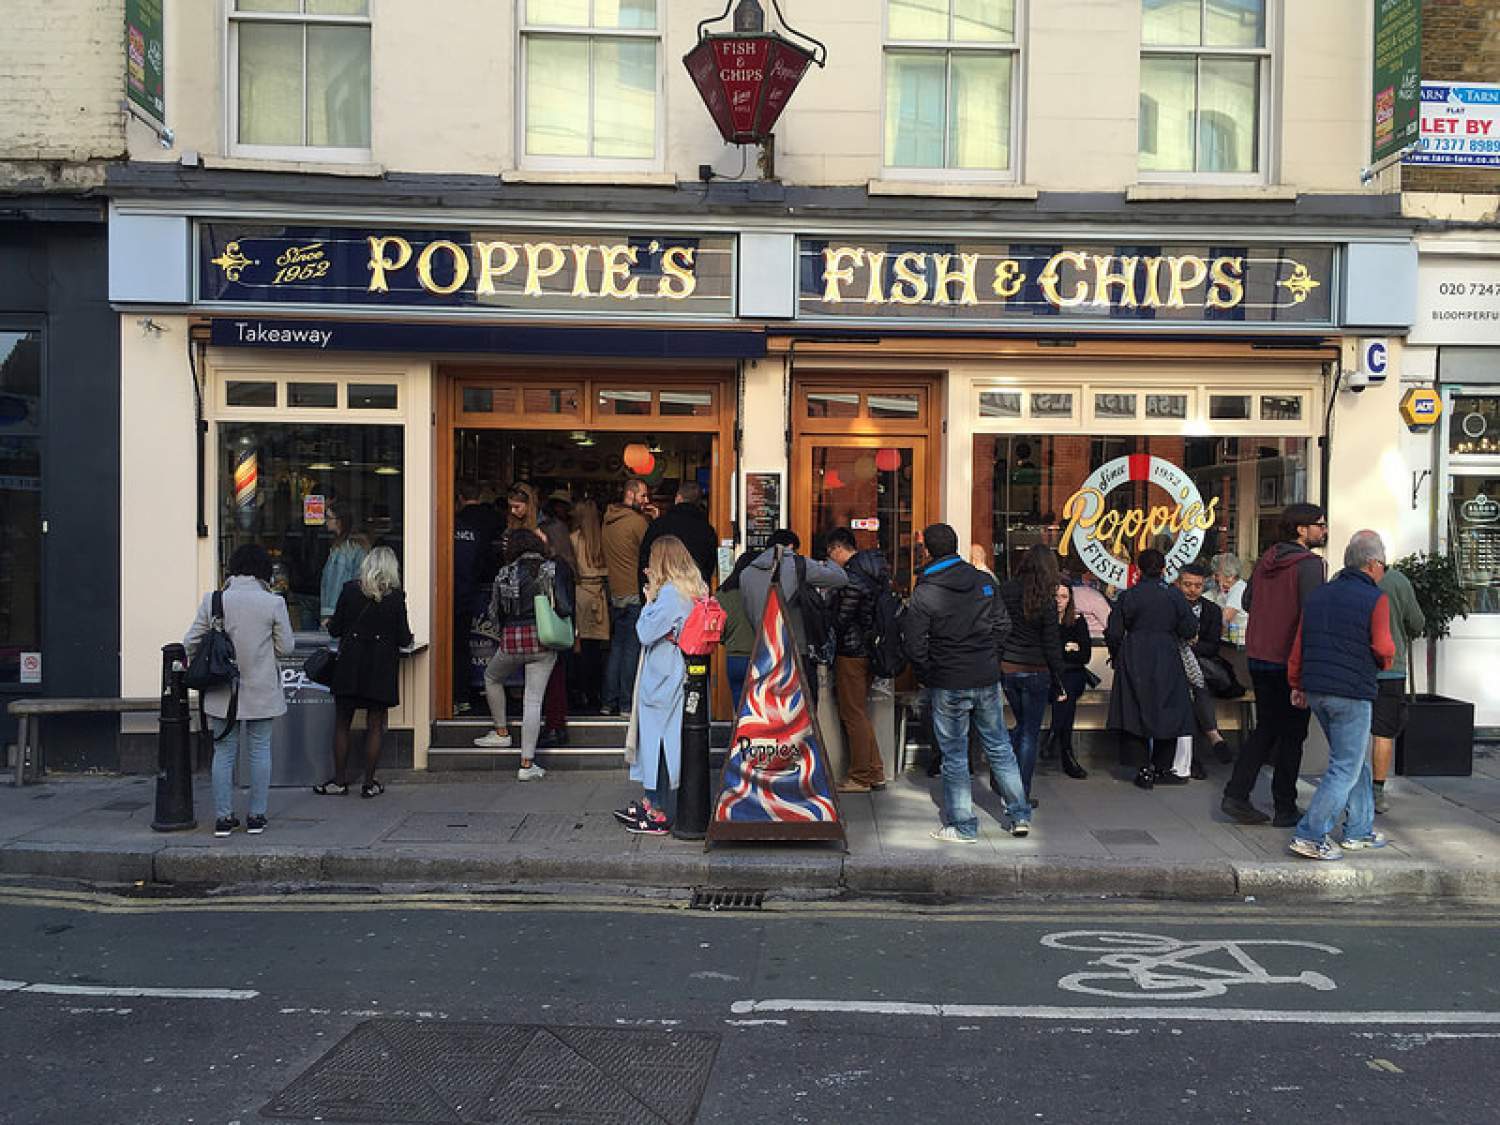 Fish and chips at the Poppies restaurant, England